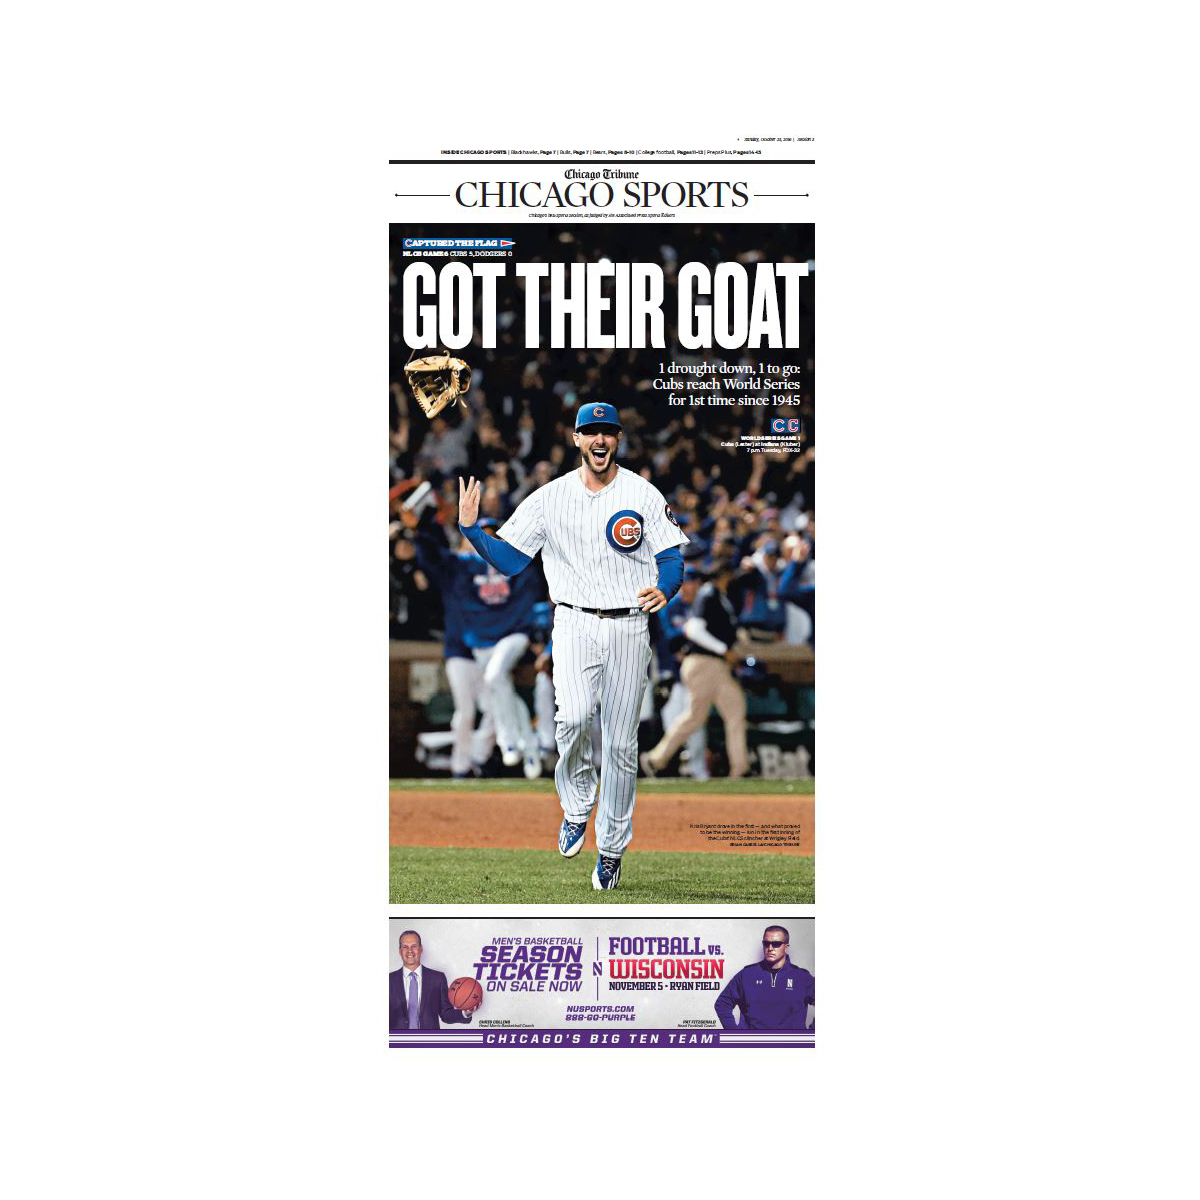 Chicago Cubs 2016 NLCS Champions Sports Front Page Poster